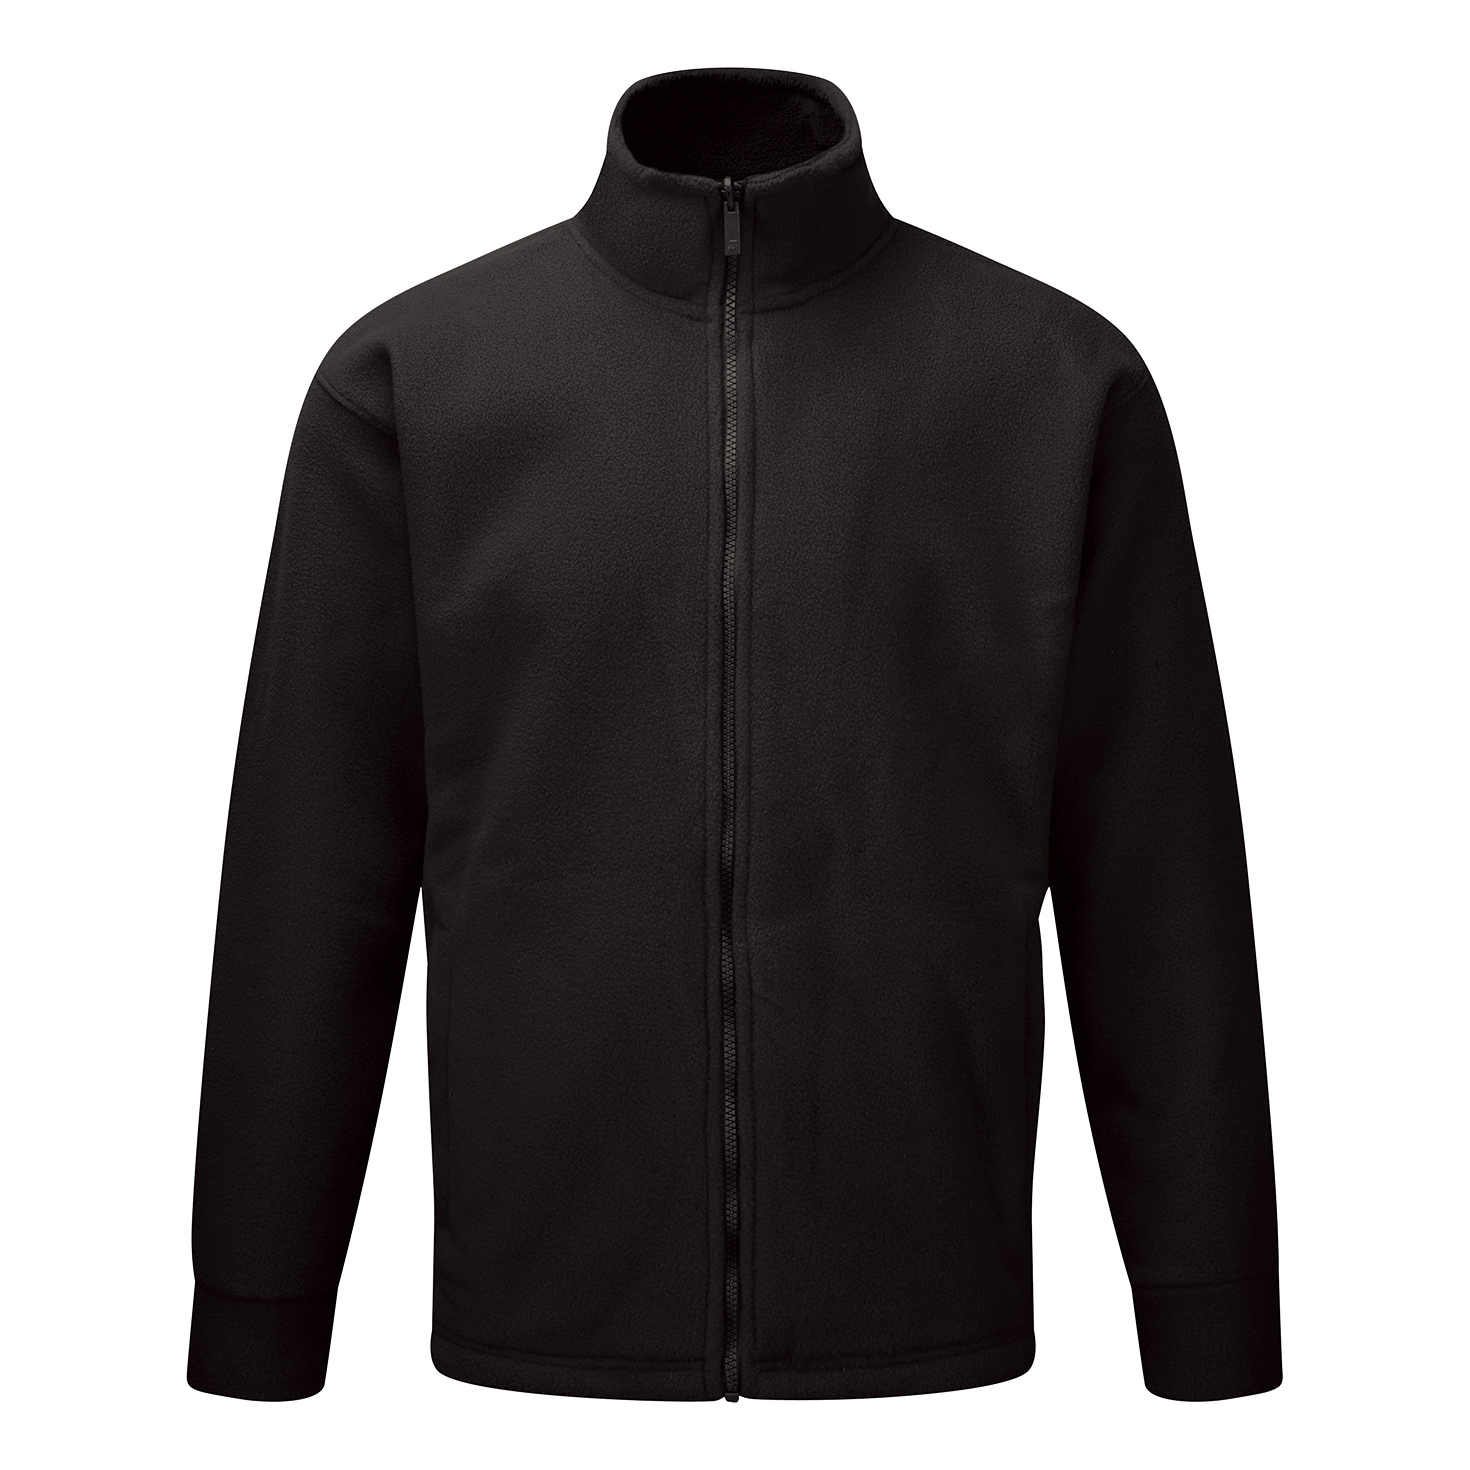 ST Basic Fleece Jacket Elasticated Cuffs and Full Zip Front Small Blk Ref 59071 *Approx 3 Day Leadtime*